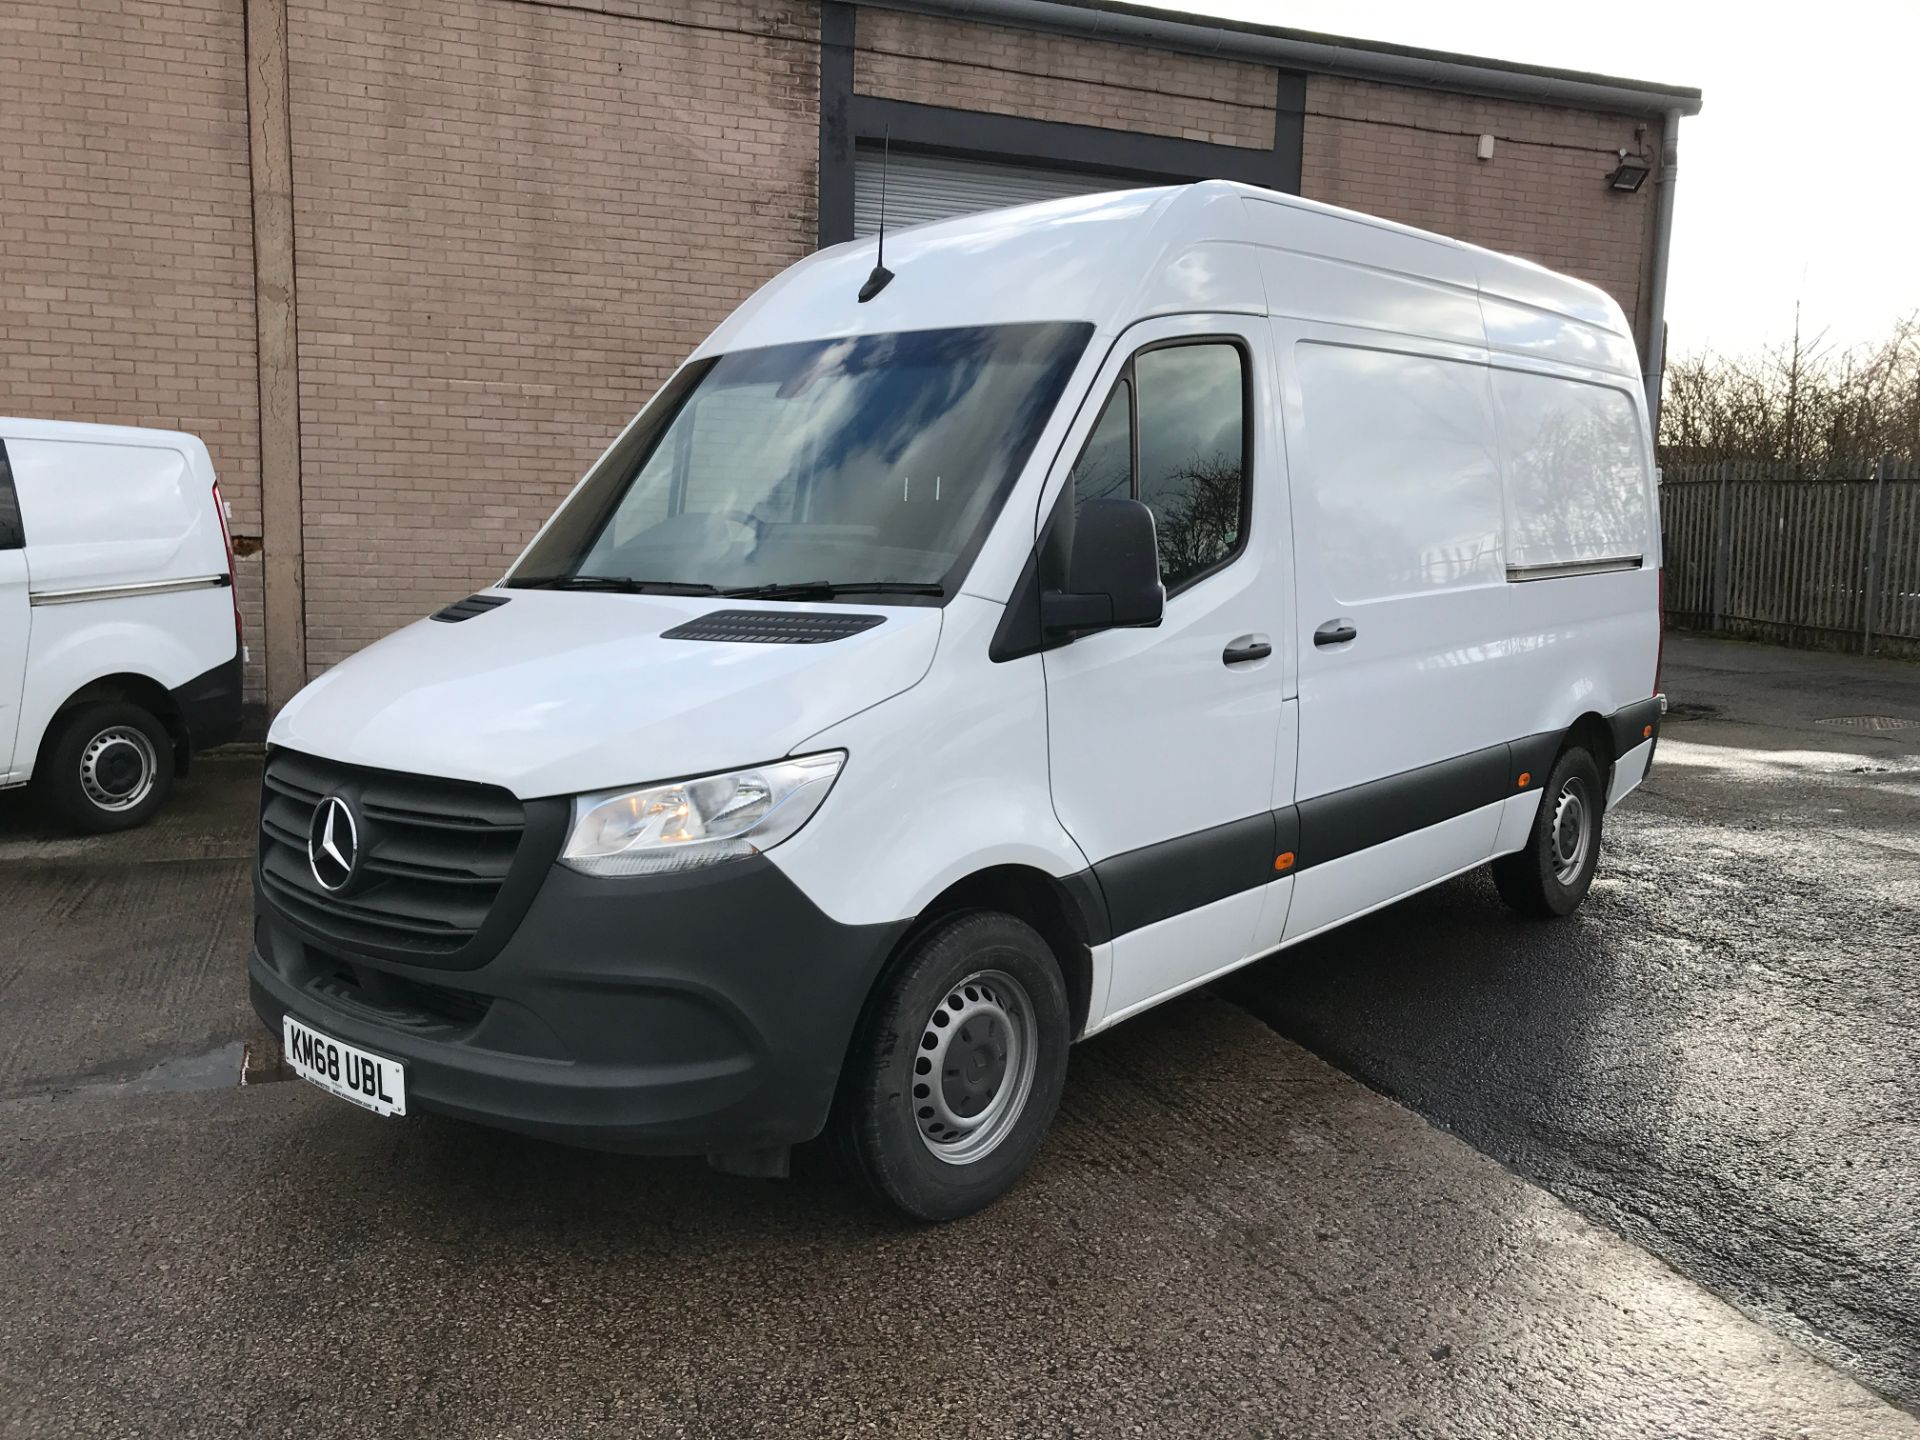 2018 Mercedes-Benz Sprinter 314CDI L2 H2 140PS EURO 6 (KM68UBL) Thumbnail 13